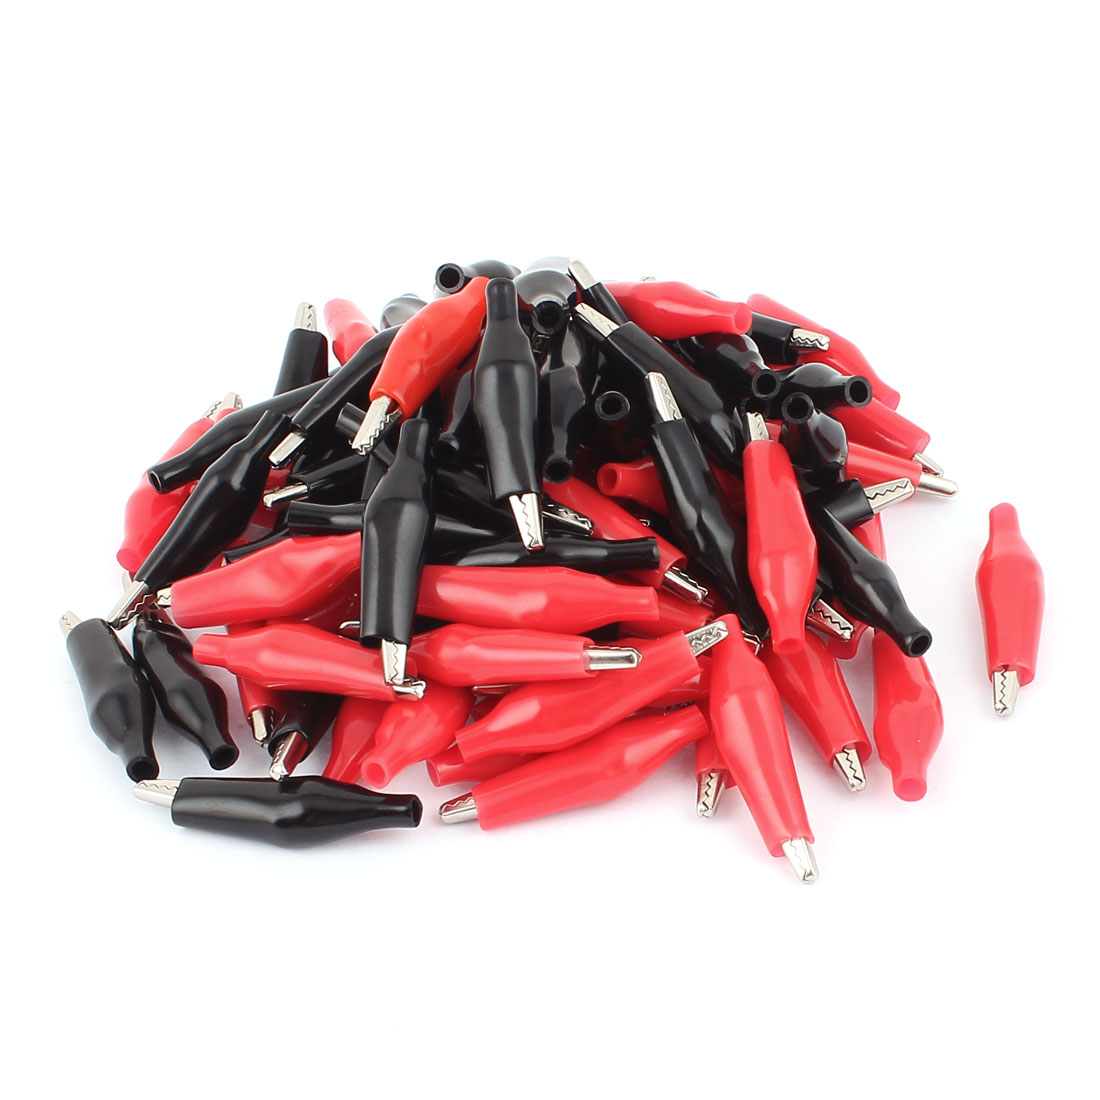 Uxcell 43mm Length Boot Plastic Metal Testing Insulated Alligator Clip Black Red 100Pcs